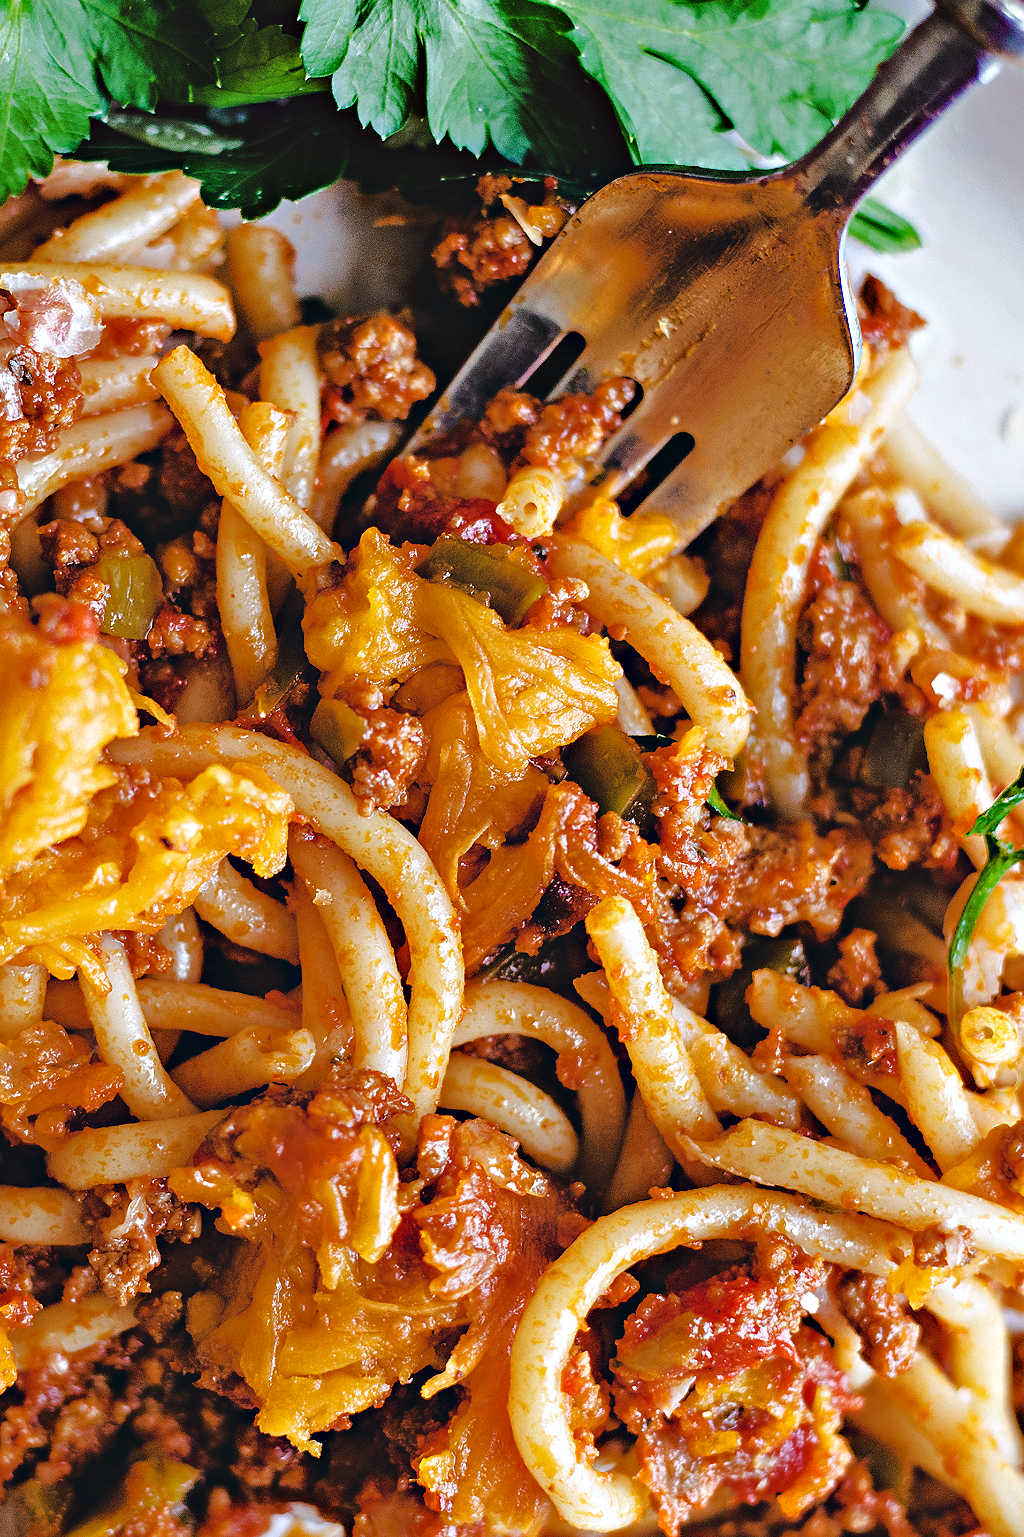 close up of baked spaghetti on a fork.